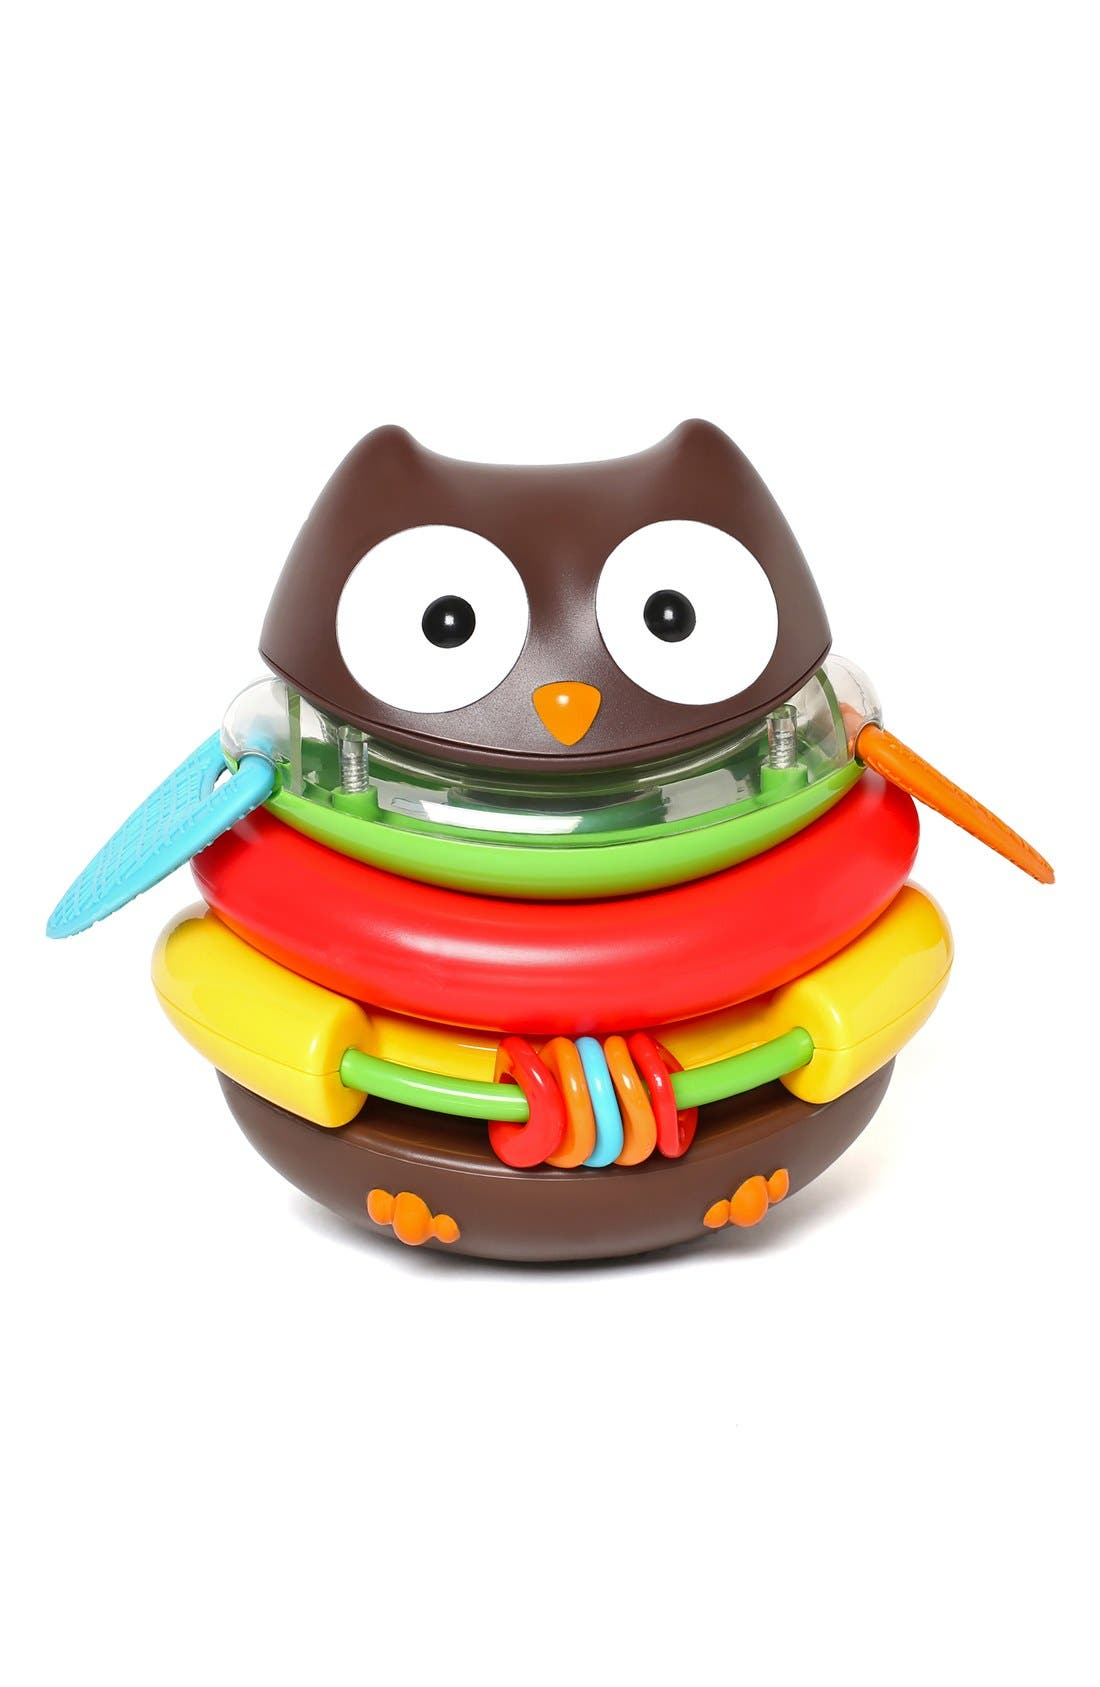 'Explore & More' Rocking Owl Stacker,                             Main thumbnail 1, color,                             200